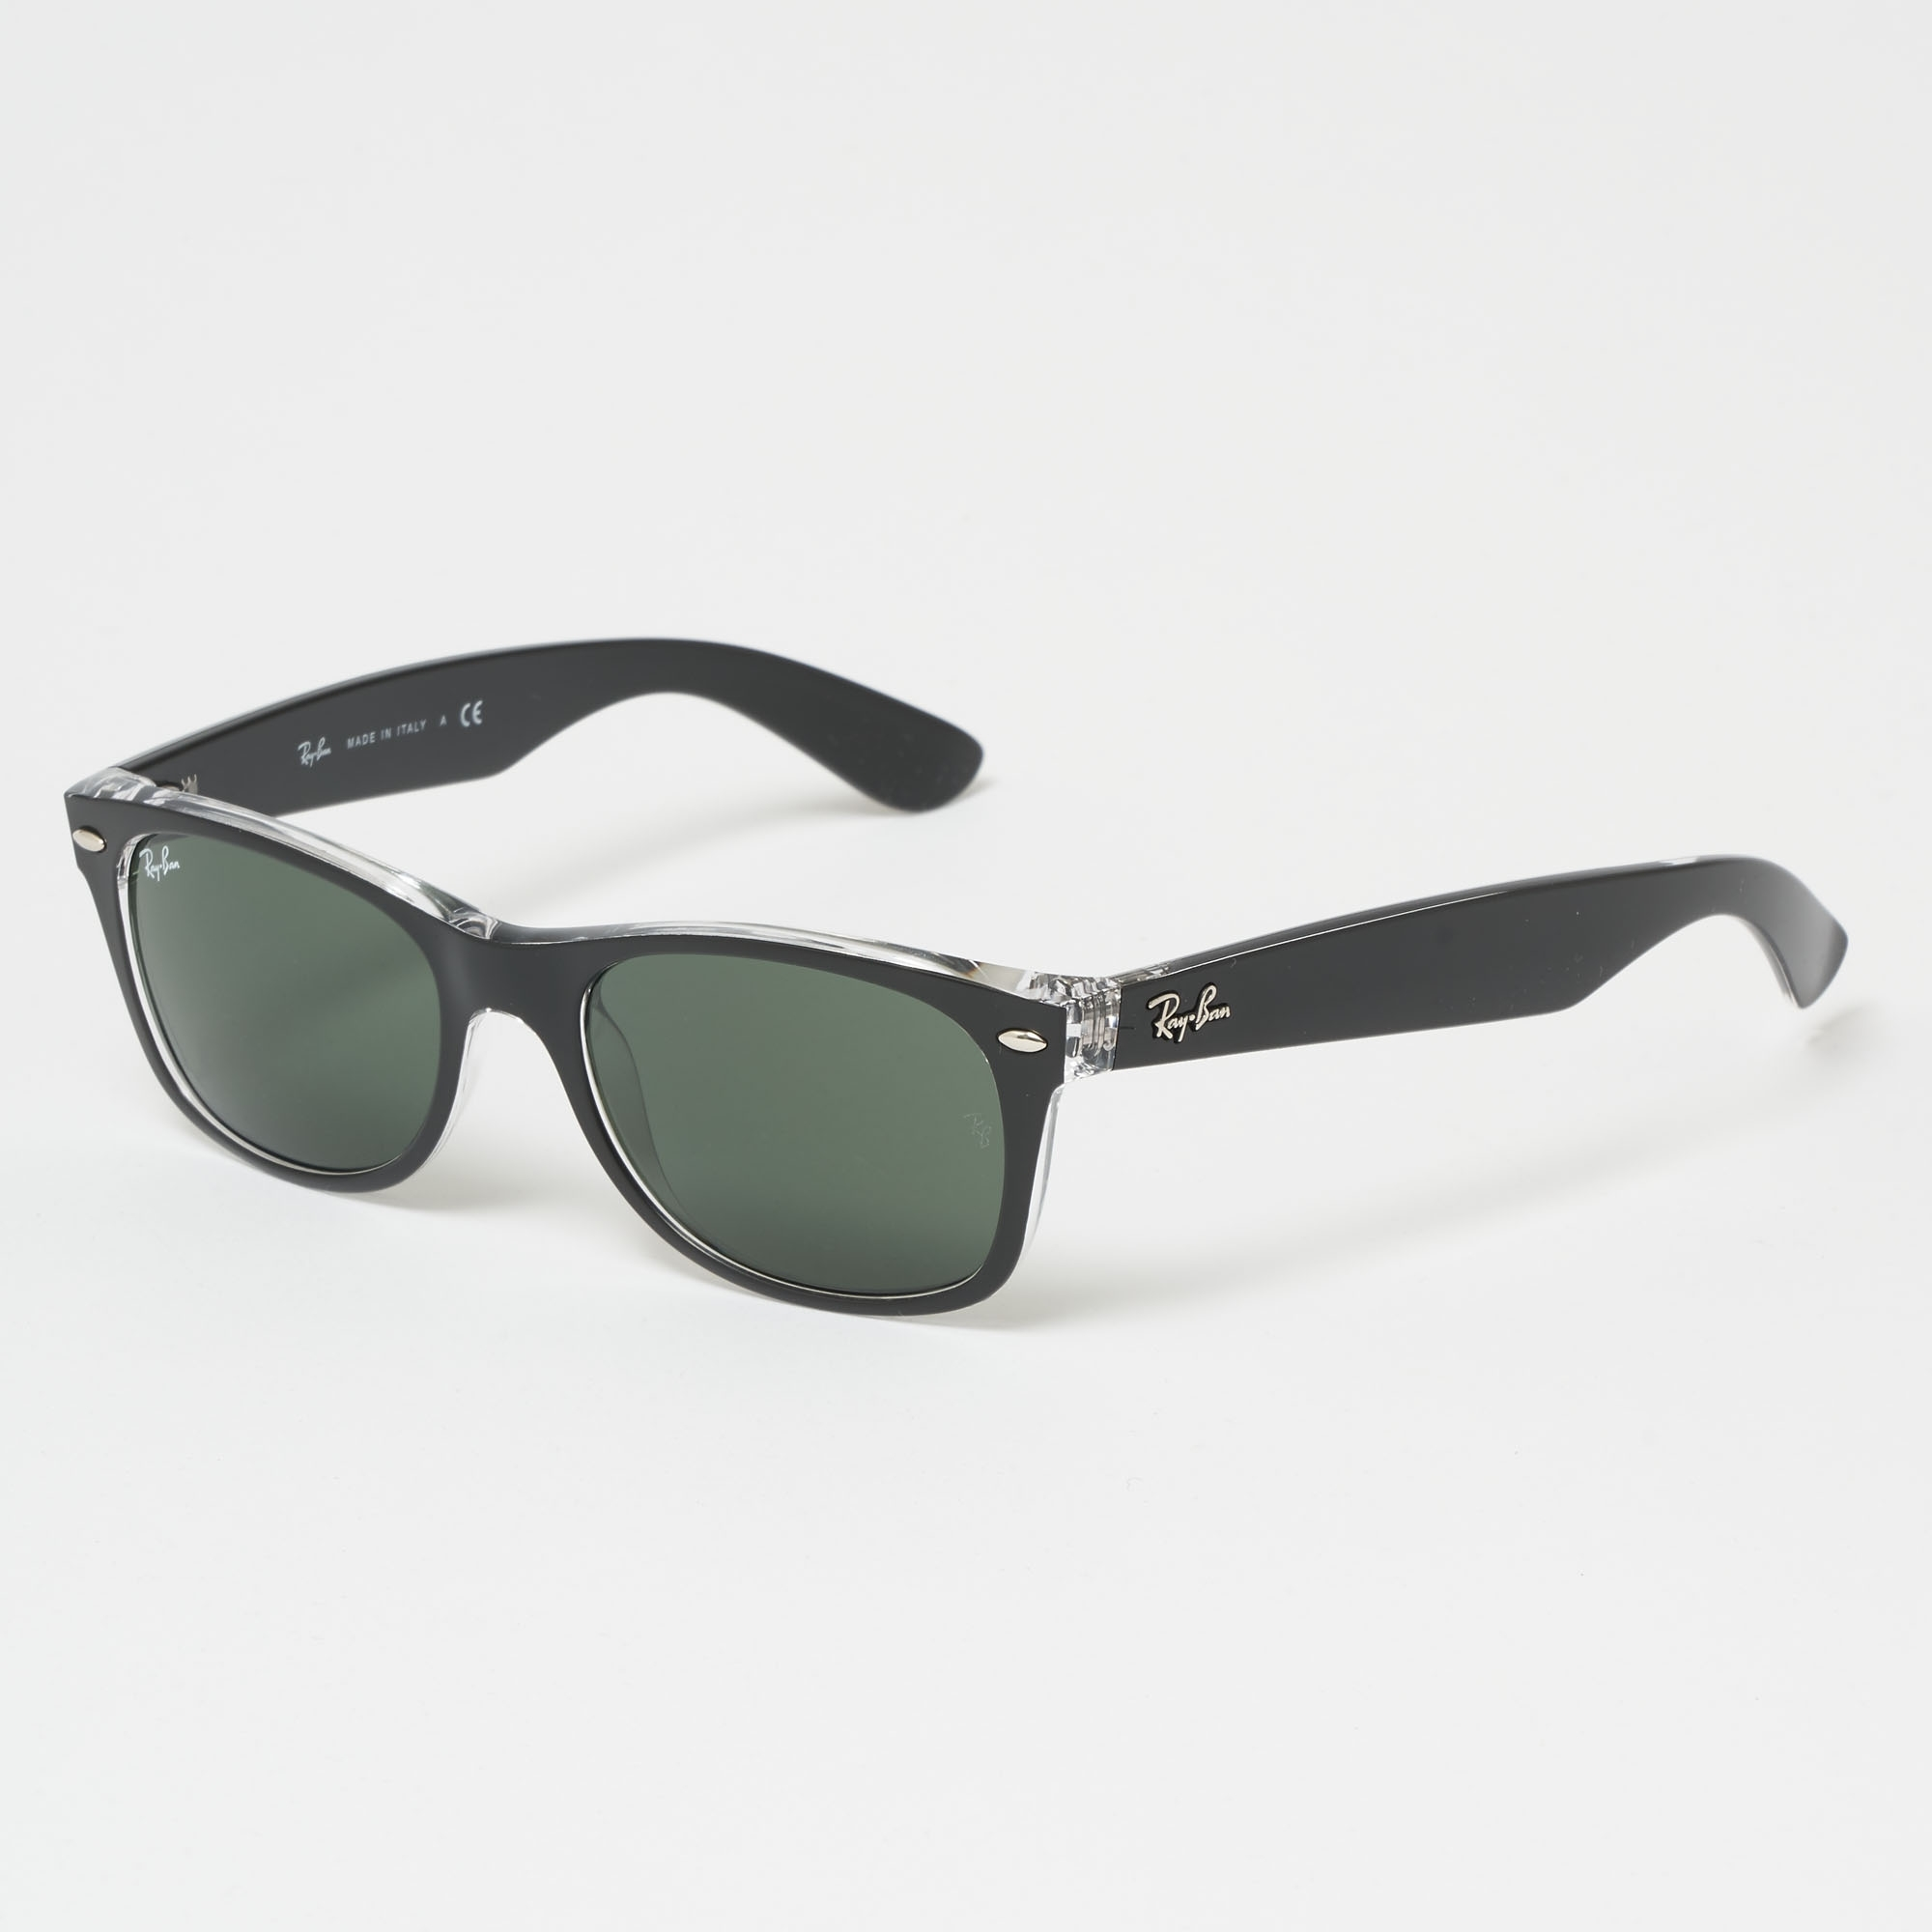 947d62a344dd9 Ray Ban New Wayfarer Colour Mix Black Sunglasses 52-145 0RB2132-6052